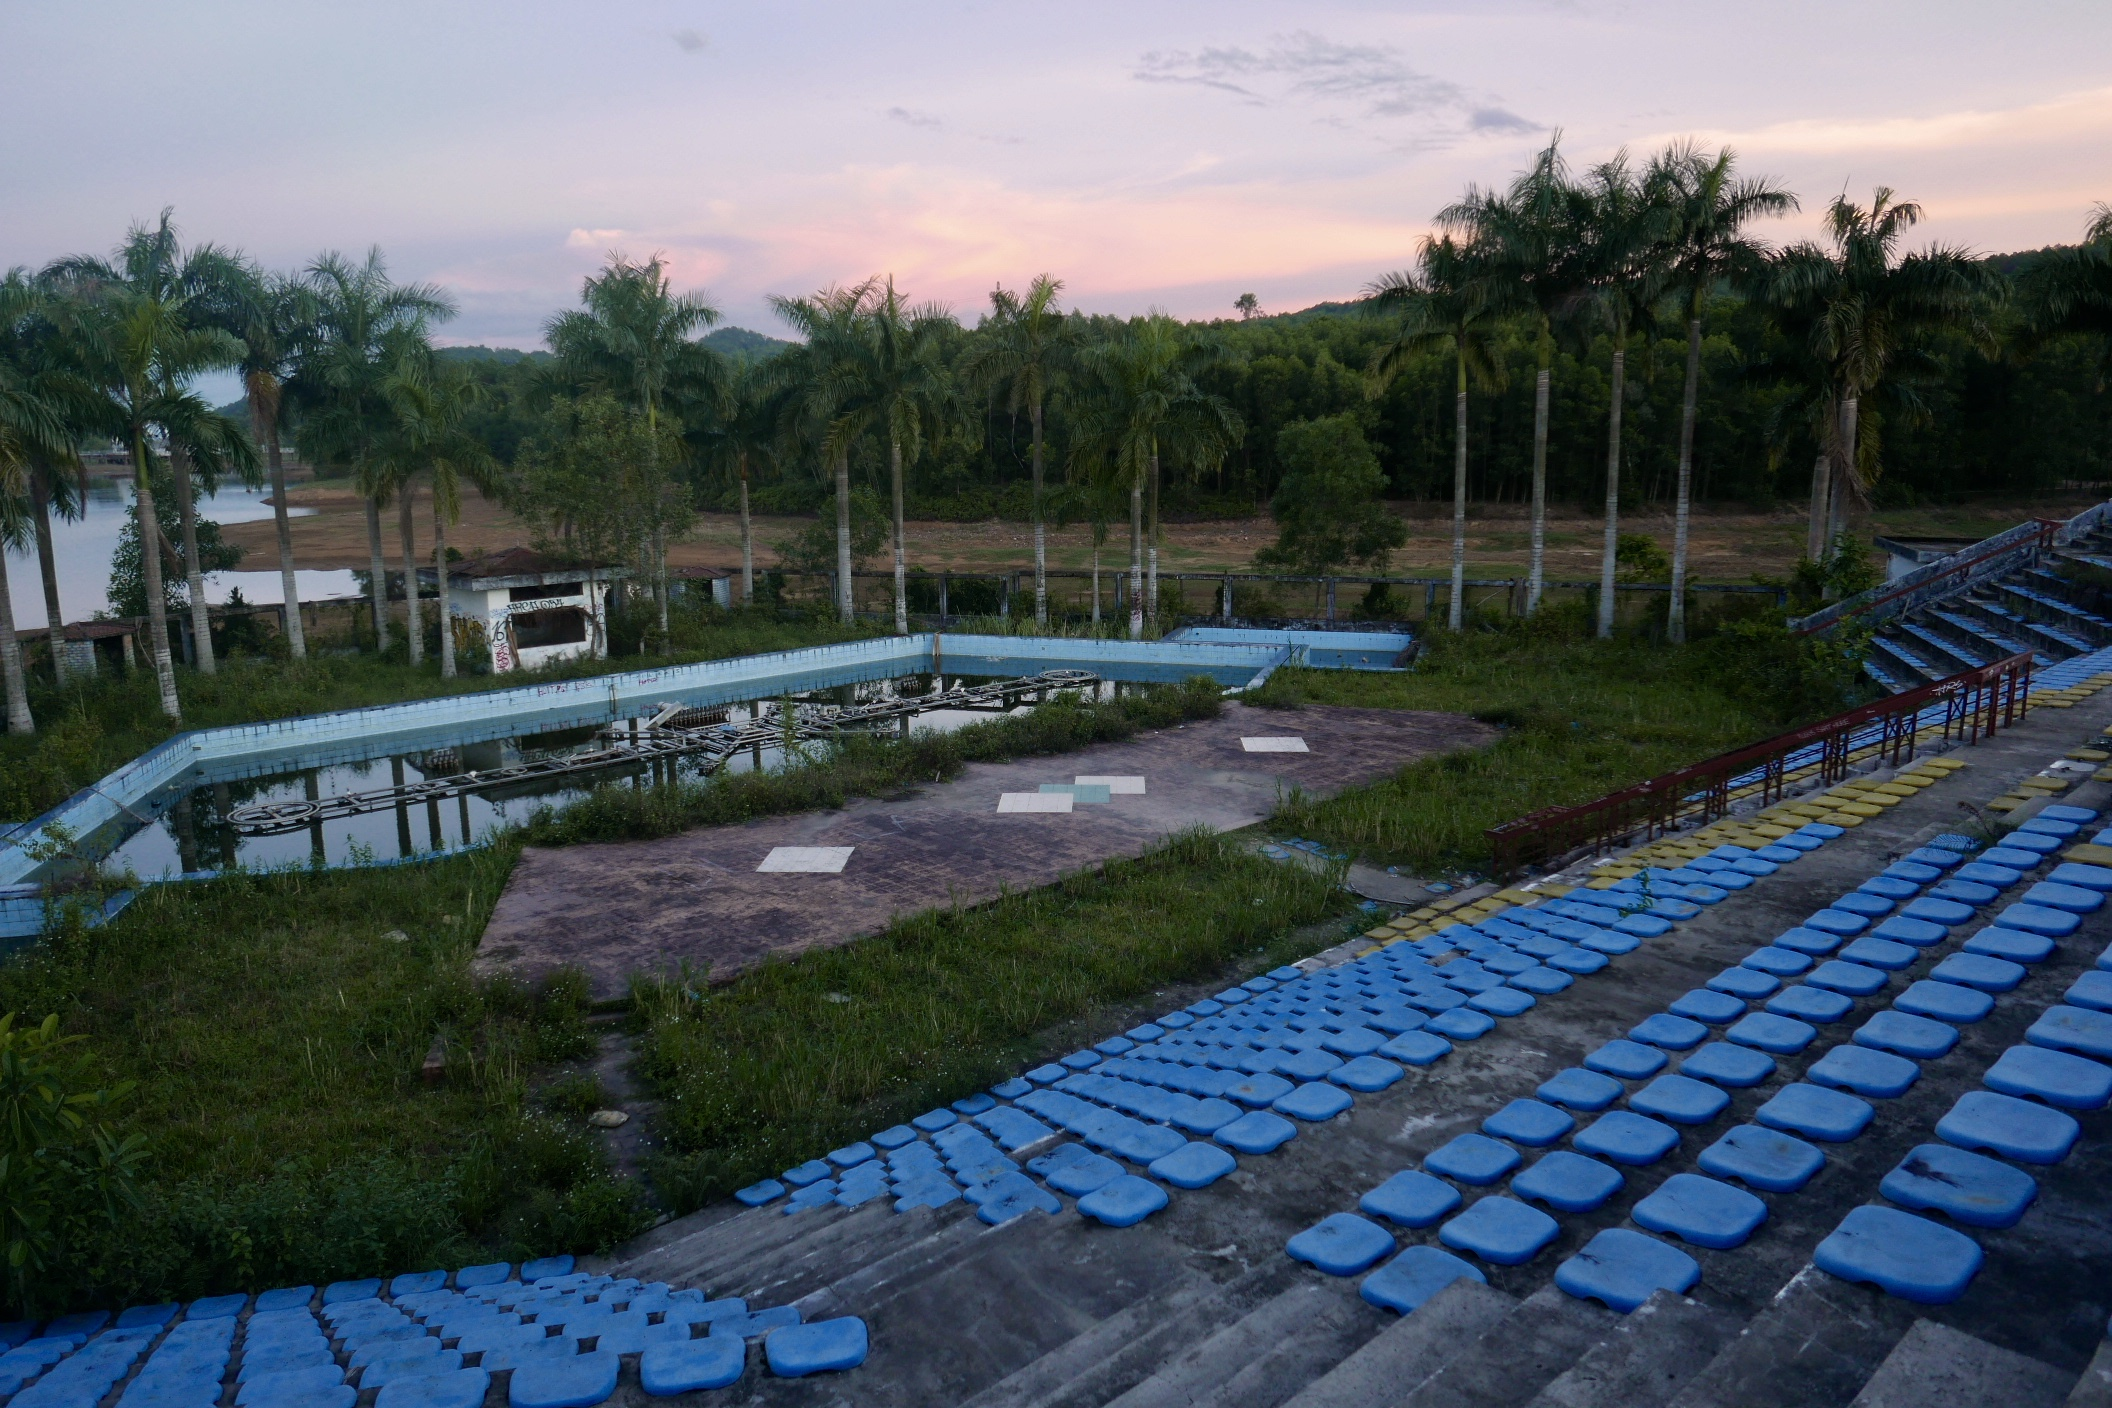 Abandoned Waterpark in Hue, Vietnam